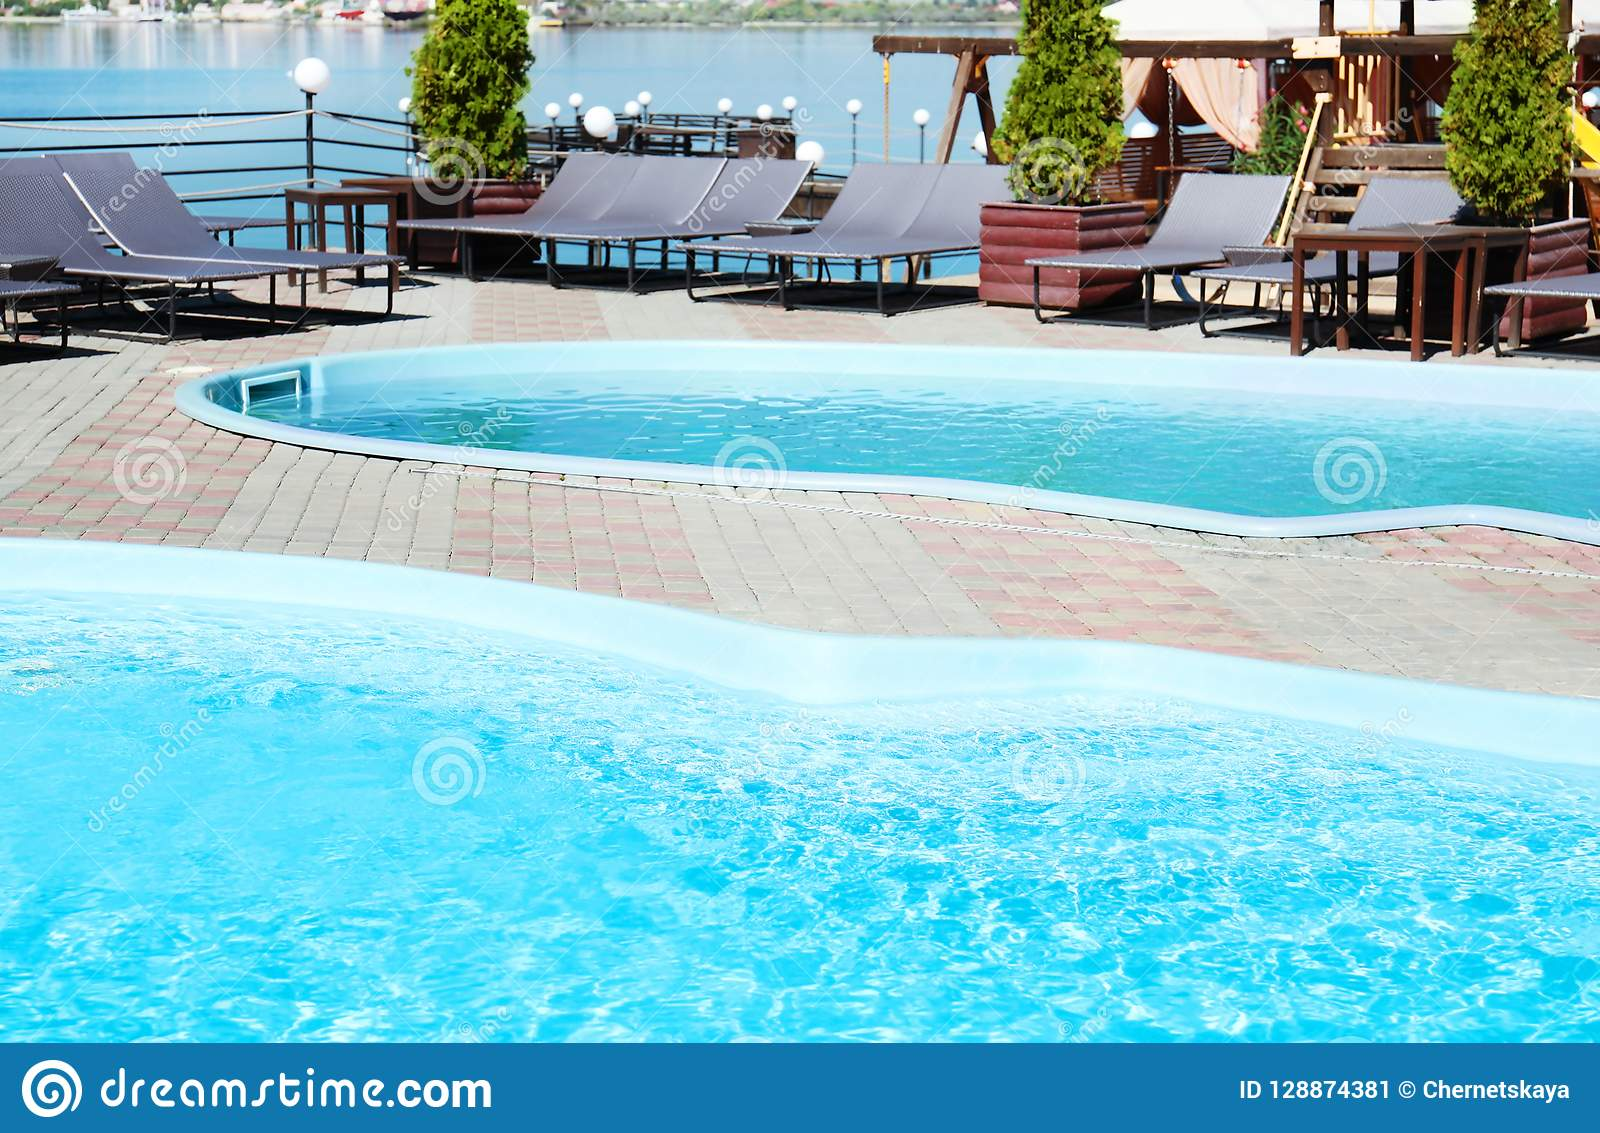 Swimming Pools With Clean Blue Water And Lounge Chairs Stock Image ...